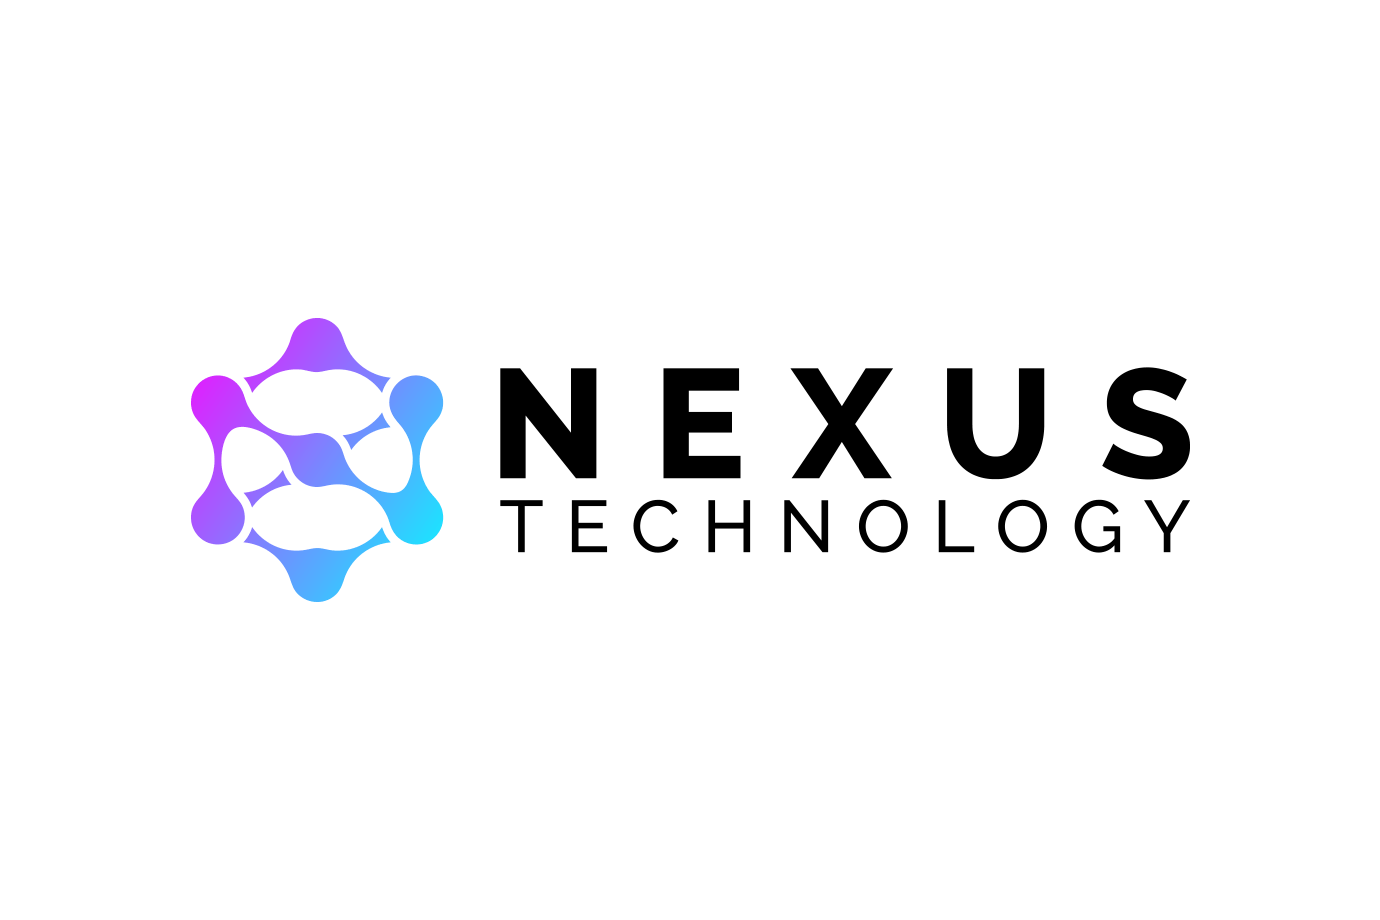 Nexus Technology